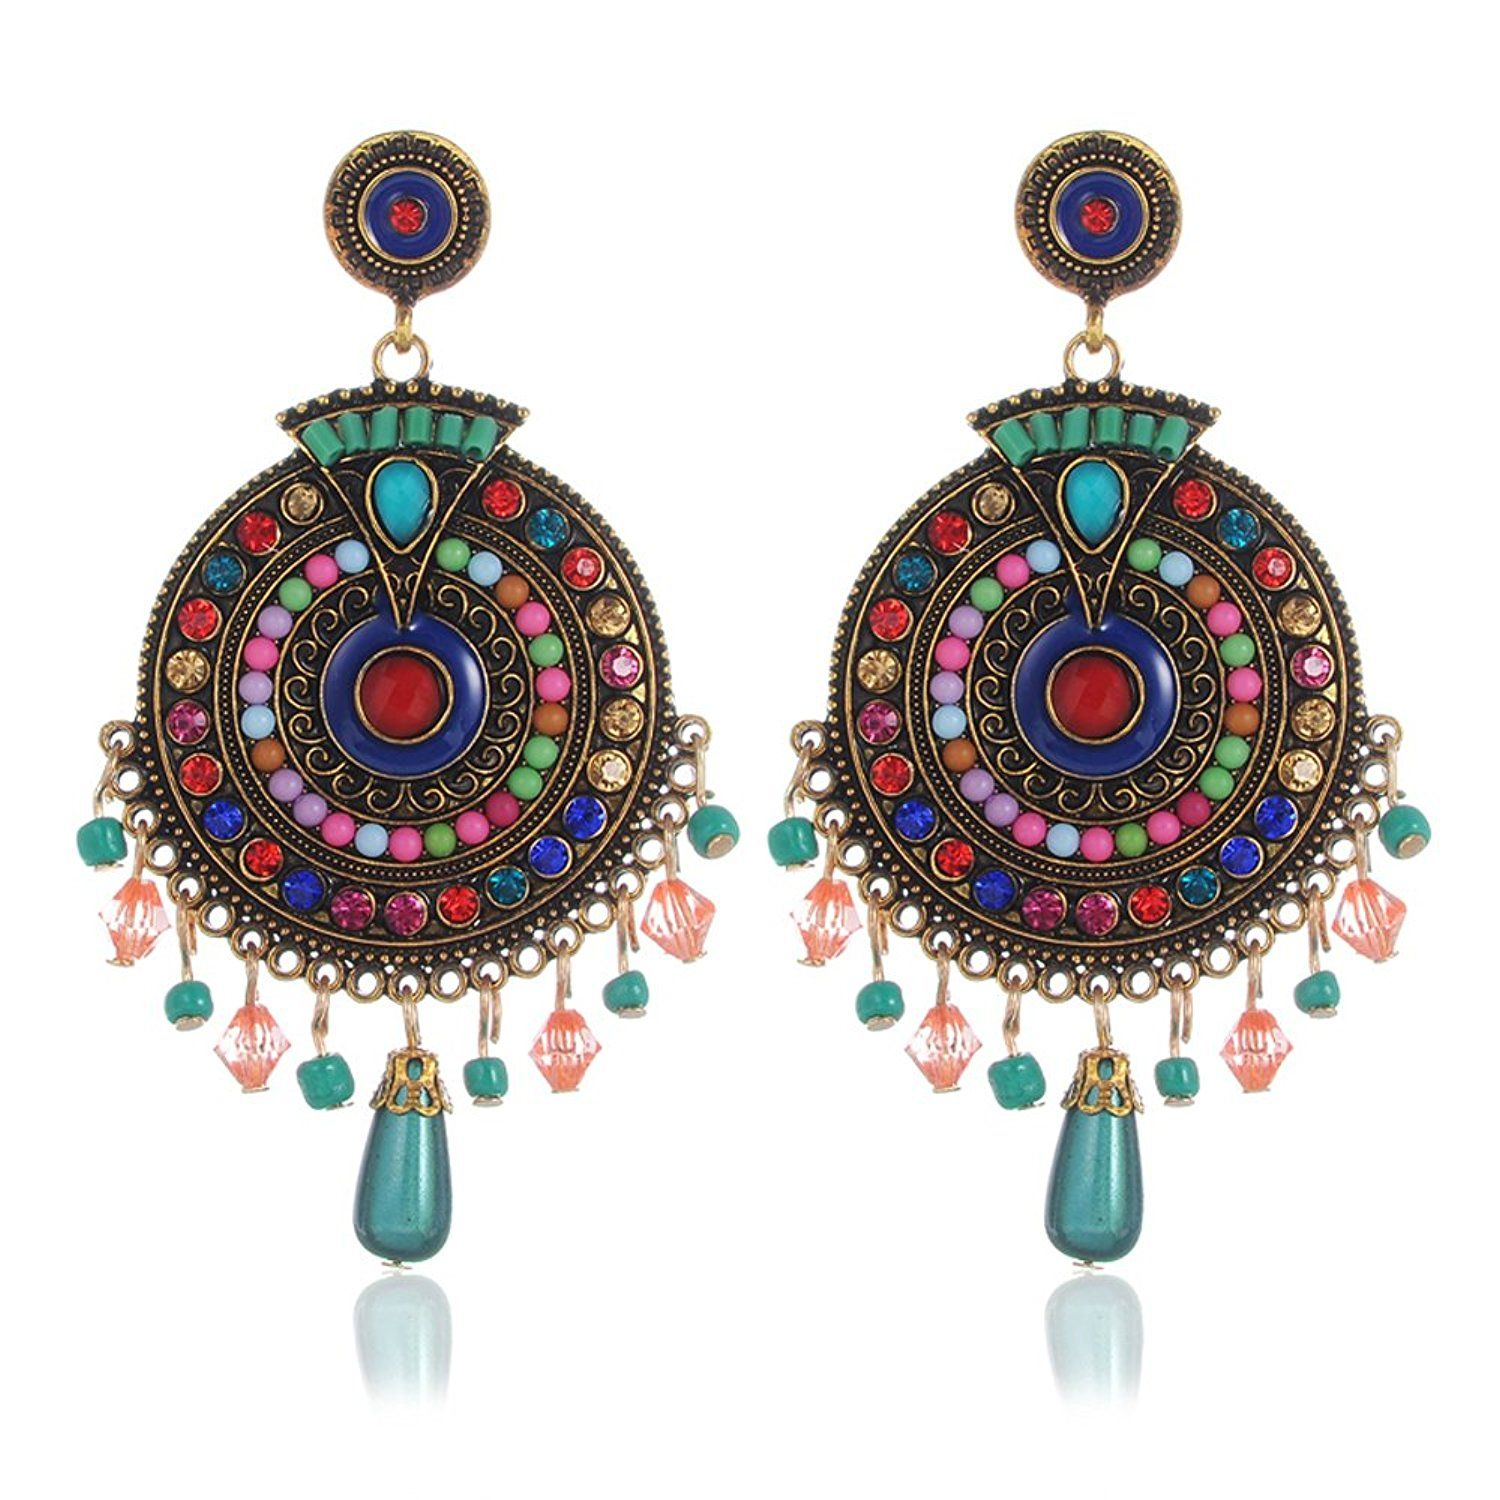 Ethnic Multi-color Zinc Chandbali Earring And Maang Tikka For Women And Girls Discounts Sale Hair & Head Jewelry